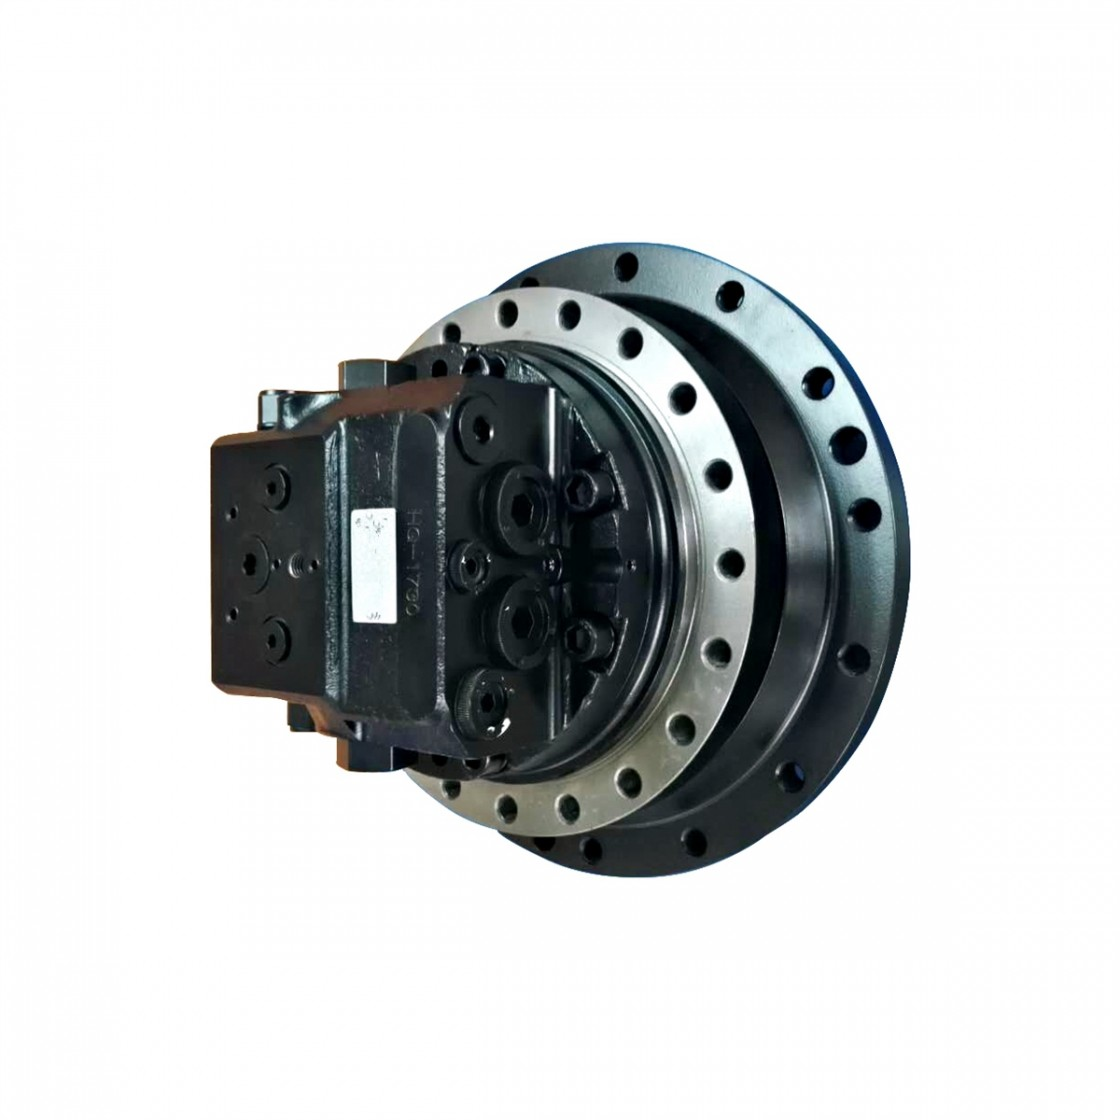 Kobelco SK80CS-2 Aftermarket Hydraulic Final Drive Motor